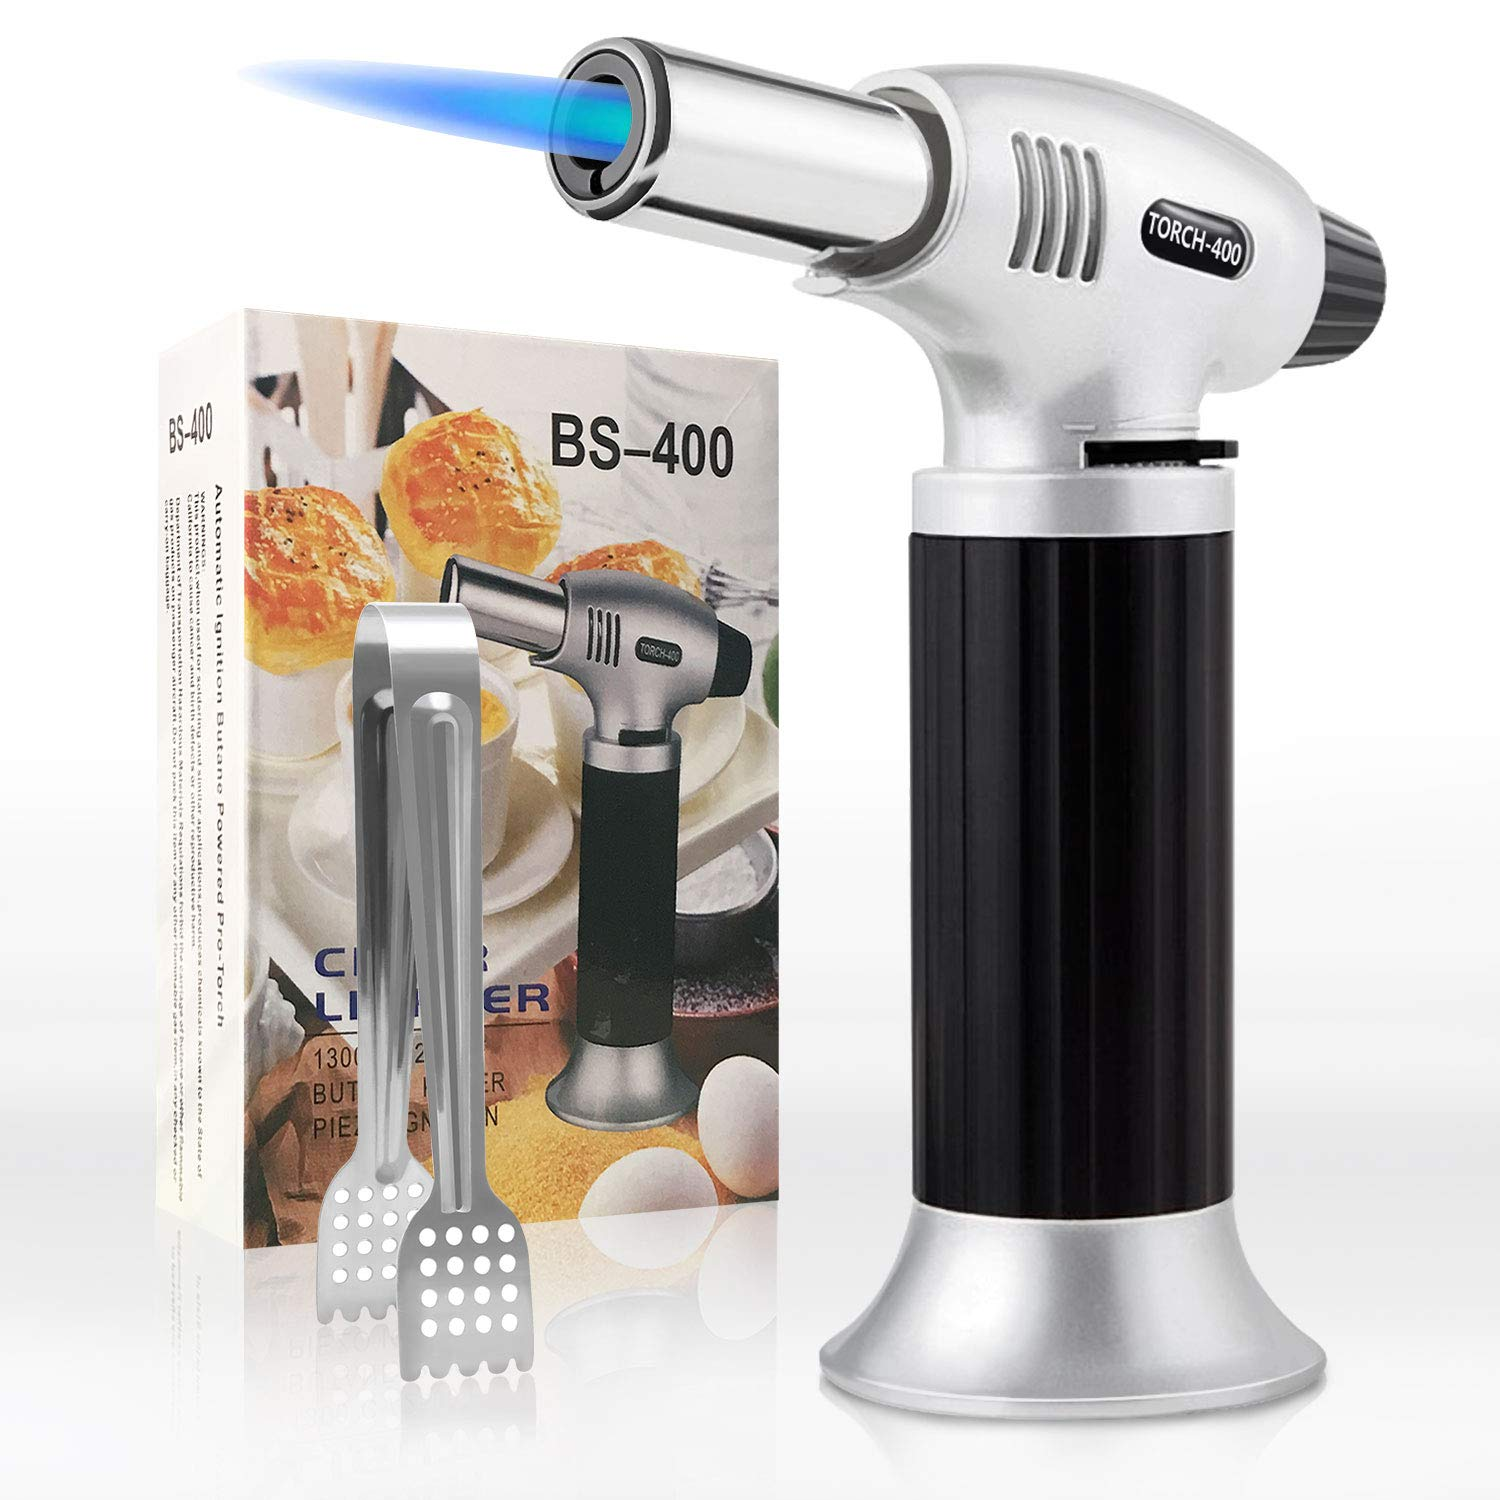 Axmda Cooking Torch, Kitchen Butane Torch, Culinary Torch Refillable, Blow Torch Lighter with Adjustable Flame and Safety Lock, Creme Brulee Torch for BBQ, Baking, DIY, Soldering (Gas Not Included)